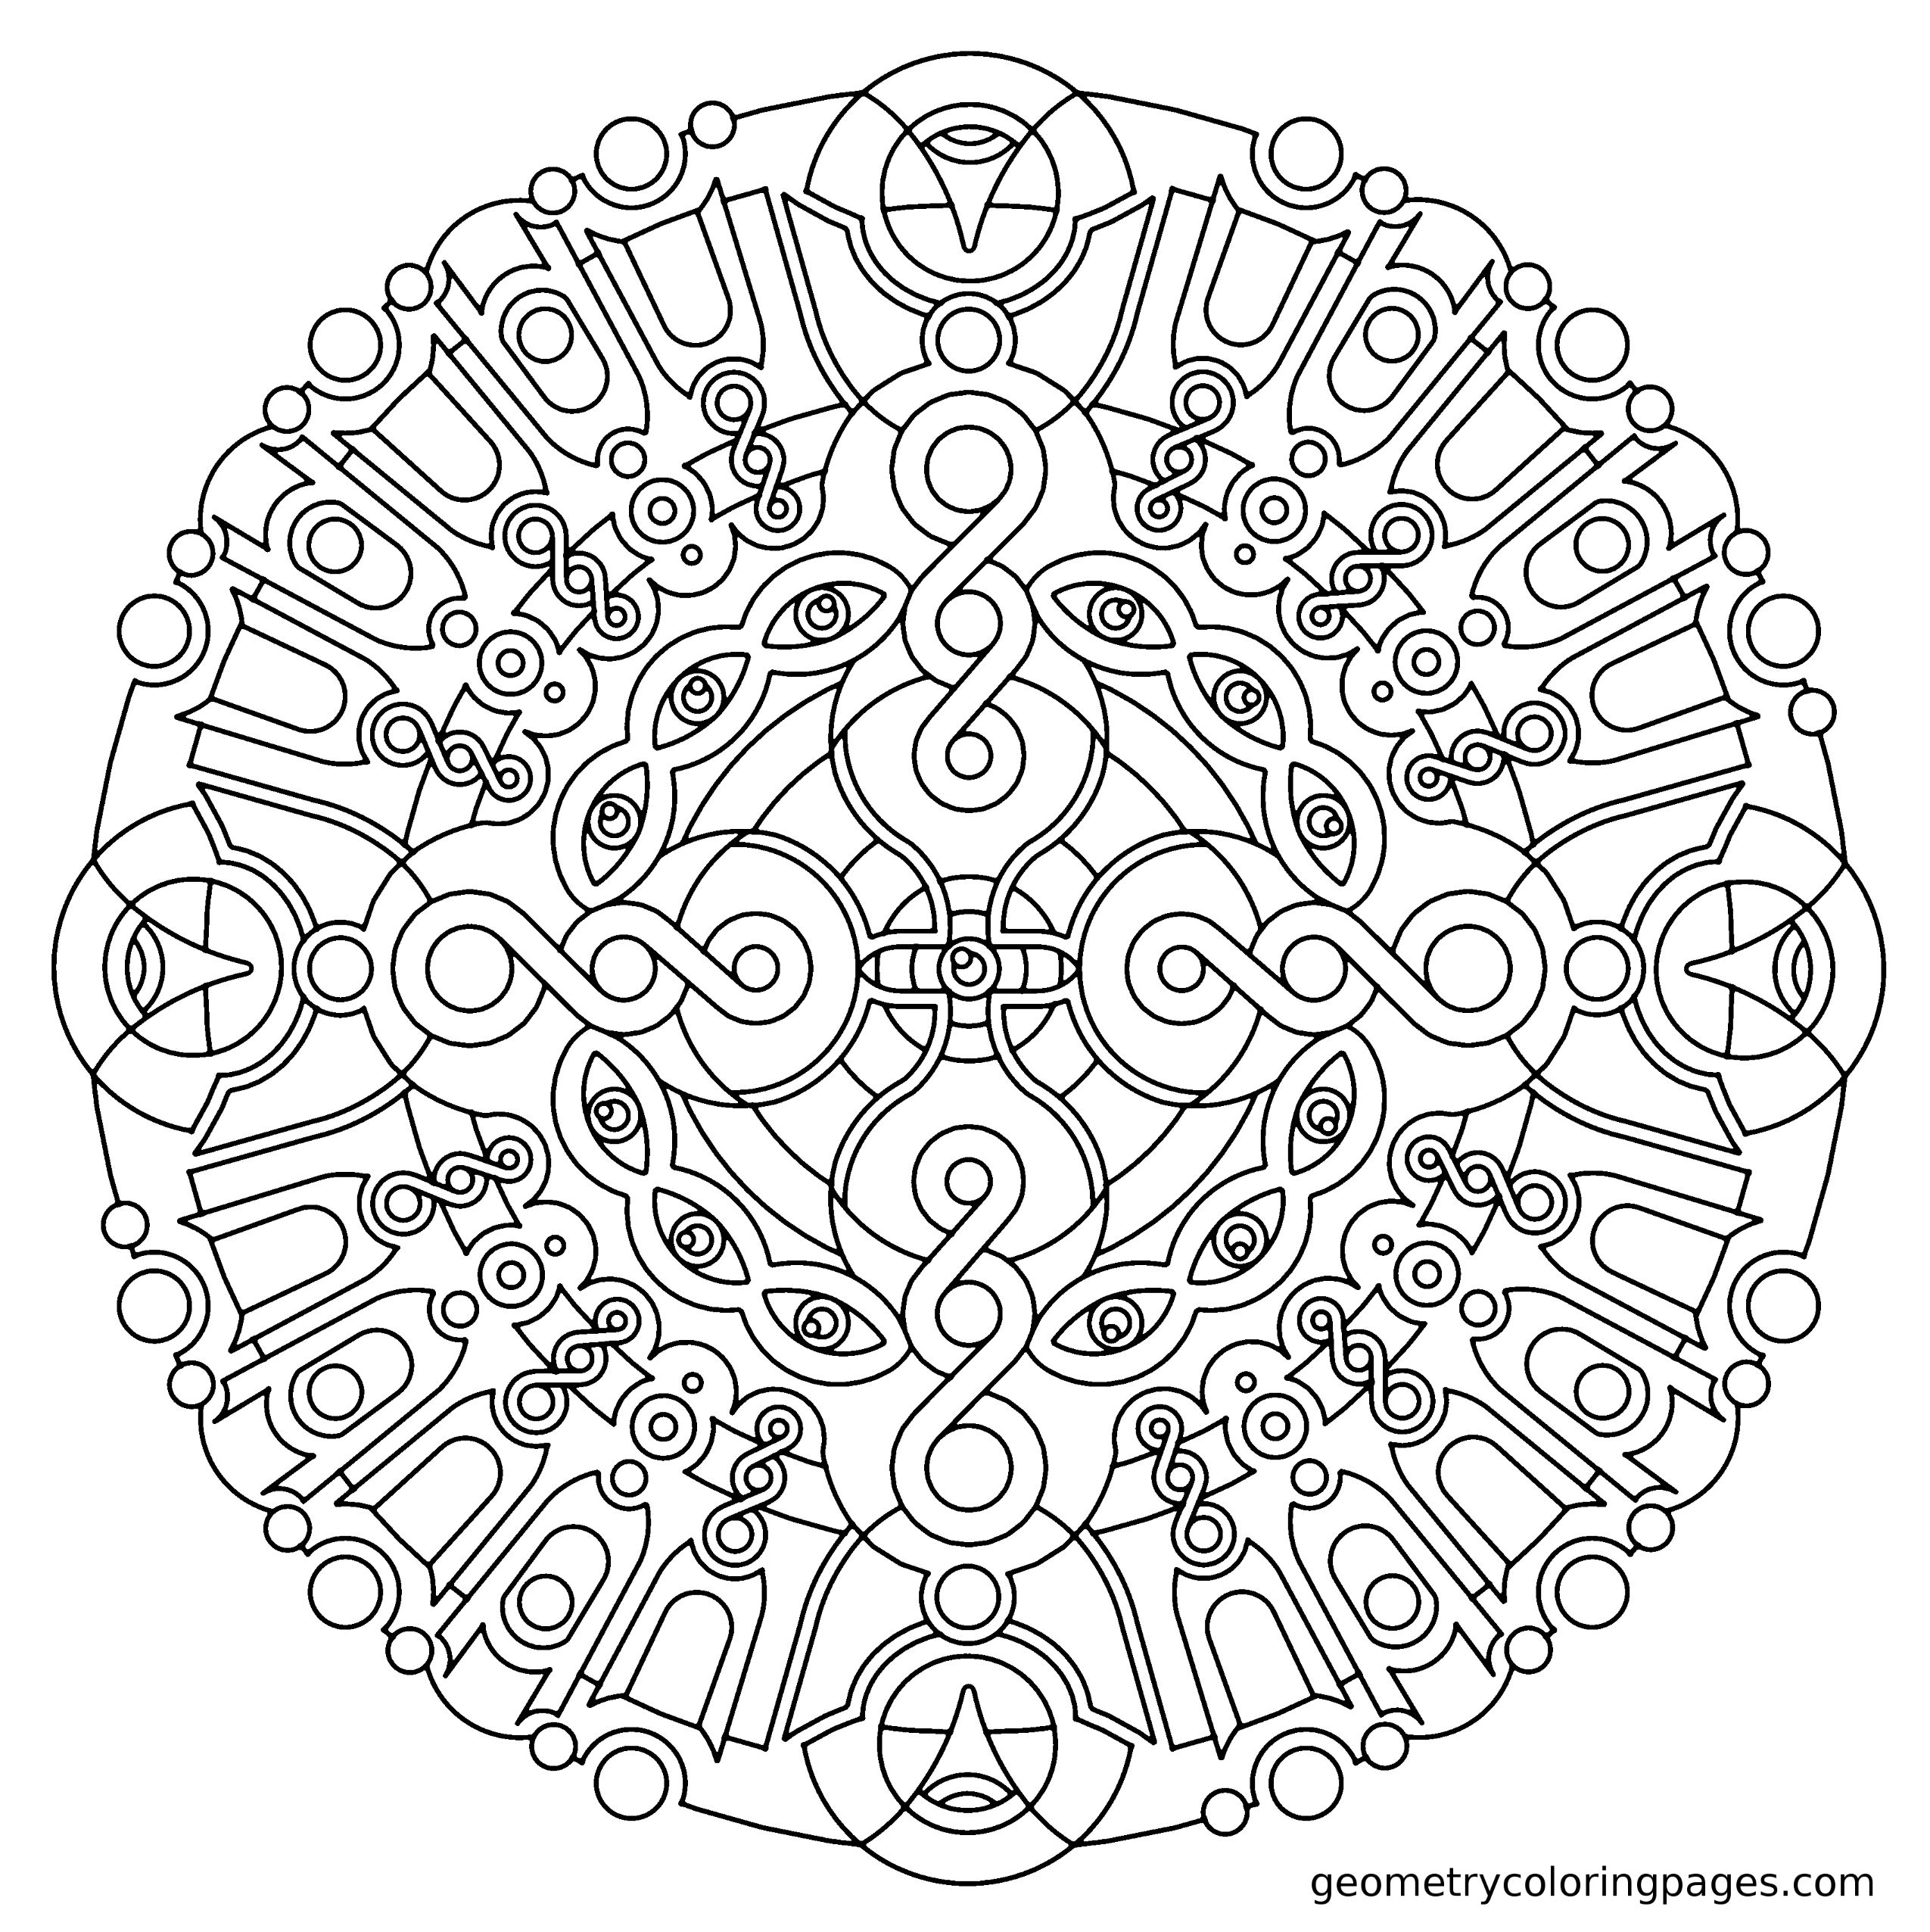 meditation coloring pages meditation is tough coloring page free printable coloring meditation pages